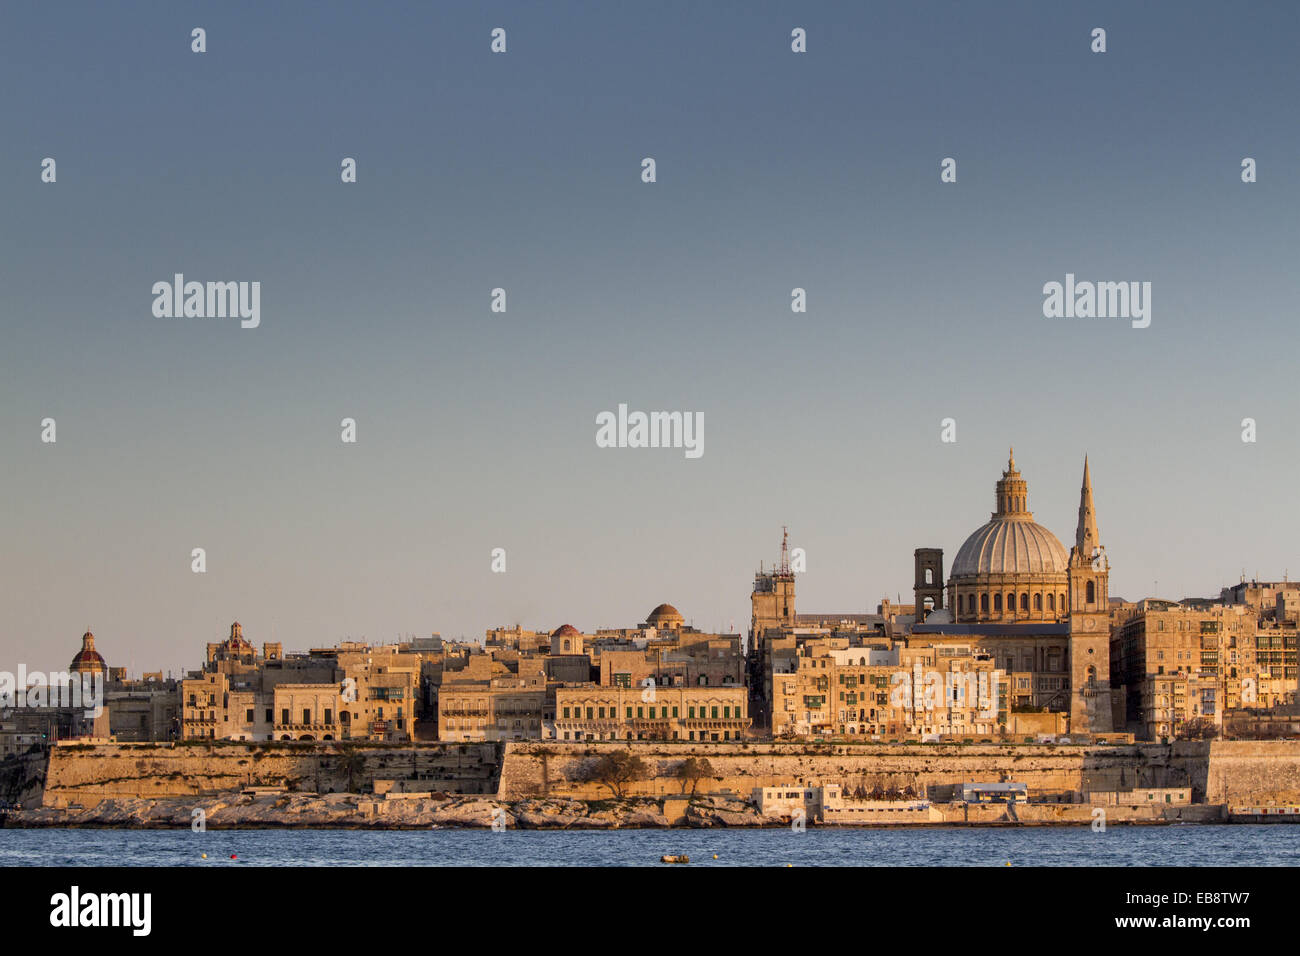 Golden hour in Valletta, Malta. - Stock Image